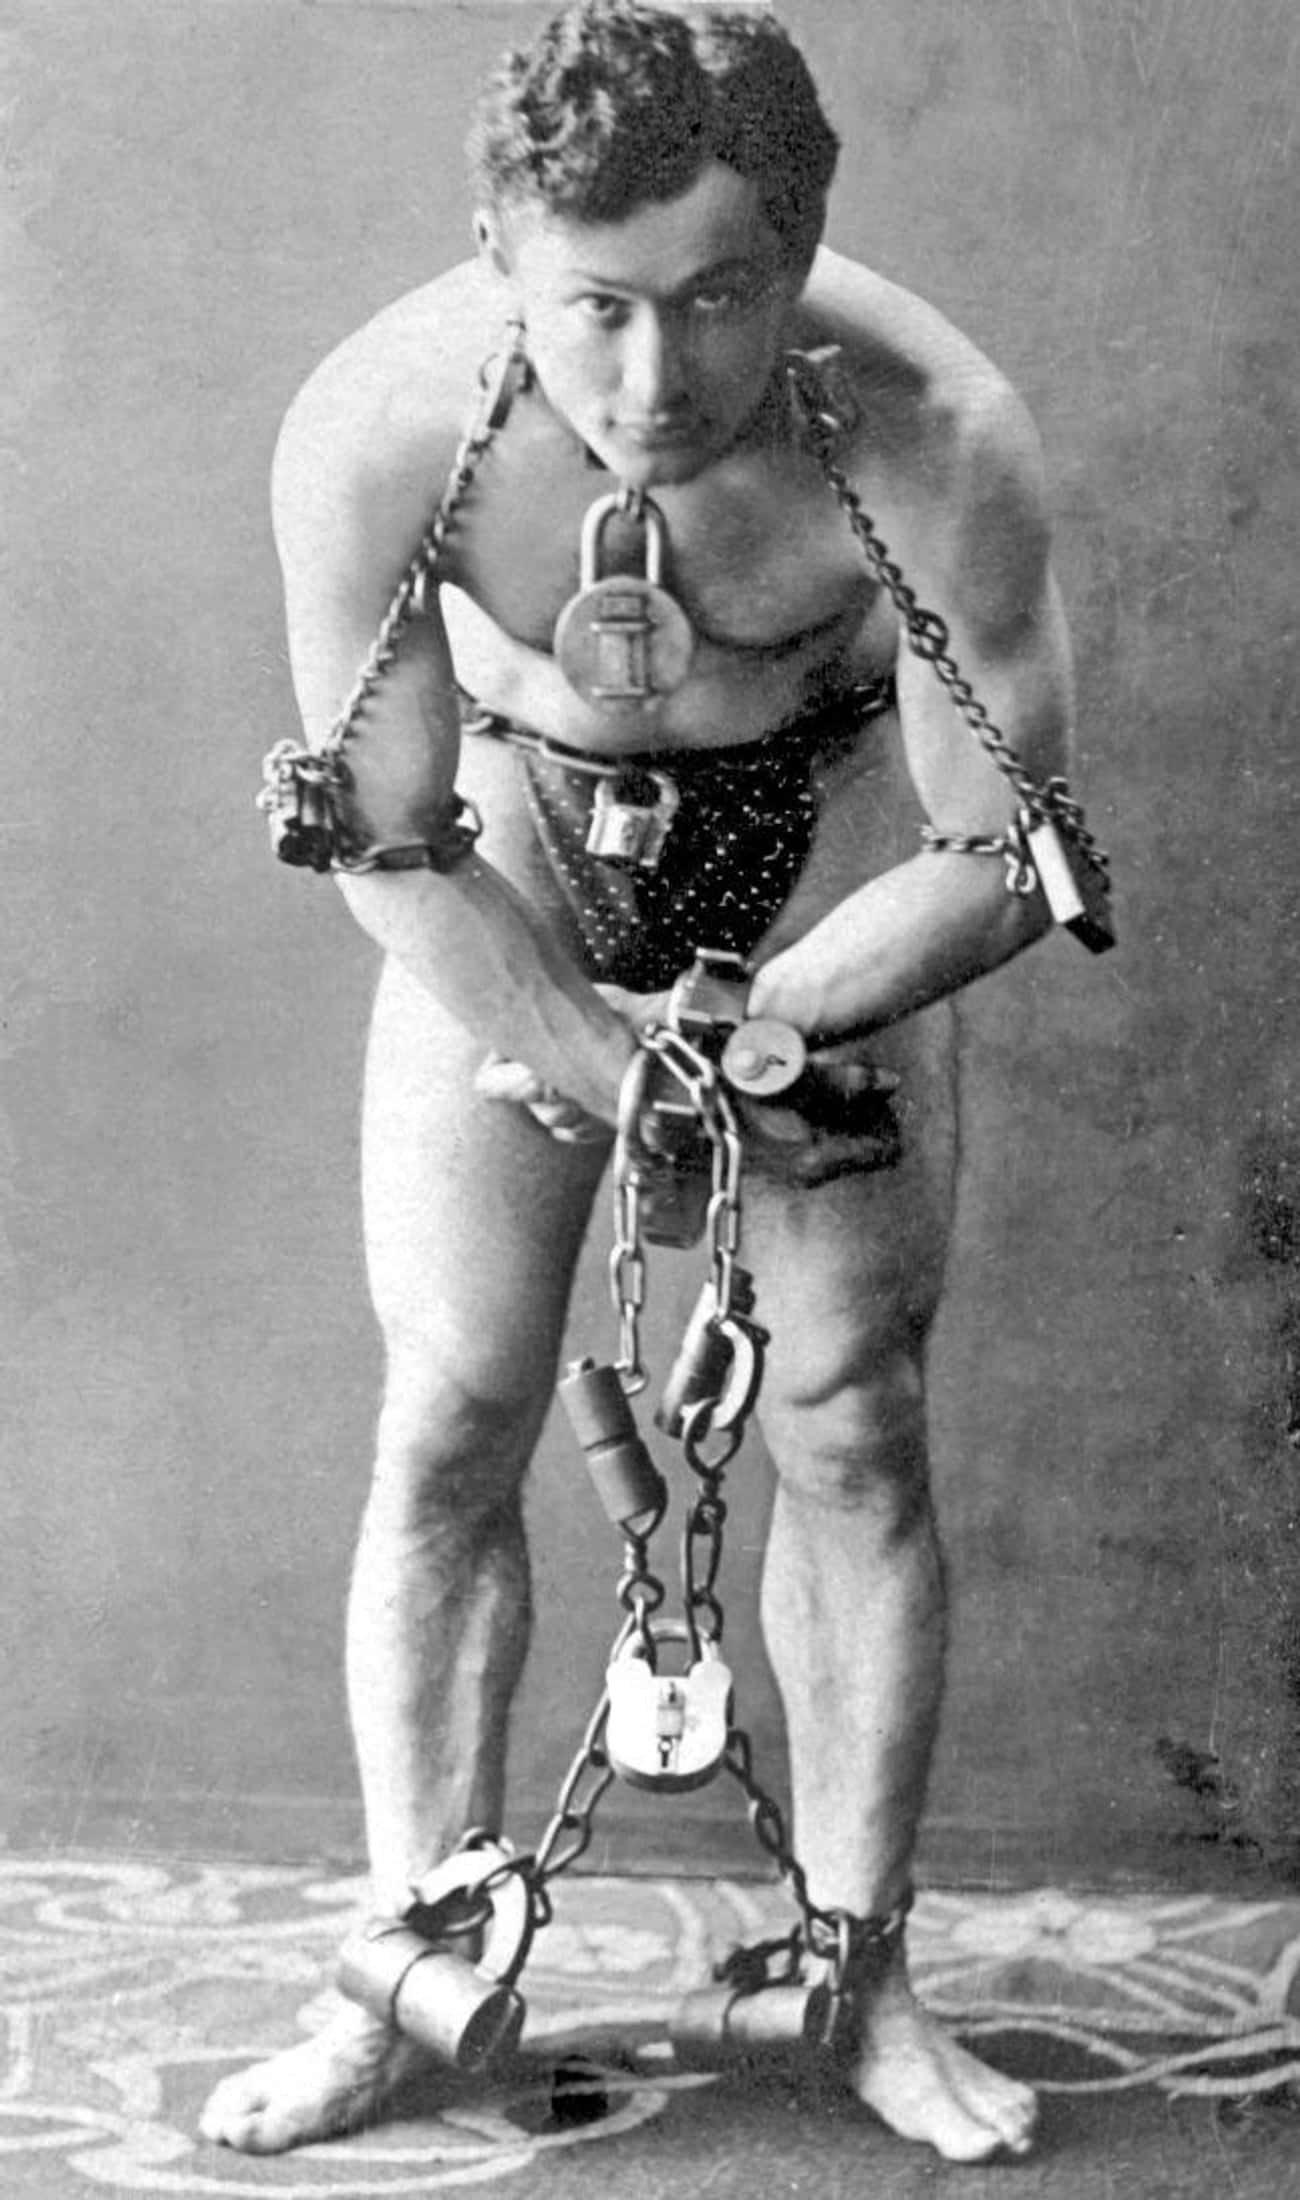 Houdini's Training As A Magici is listed (or ranked) 4 on the list A History Of Harry Houdini's Lifelong Battle To Debunk Mediums